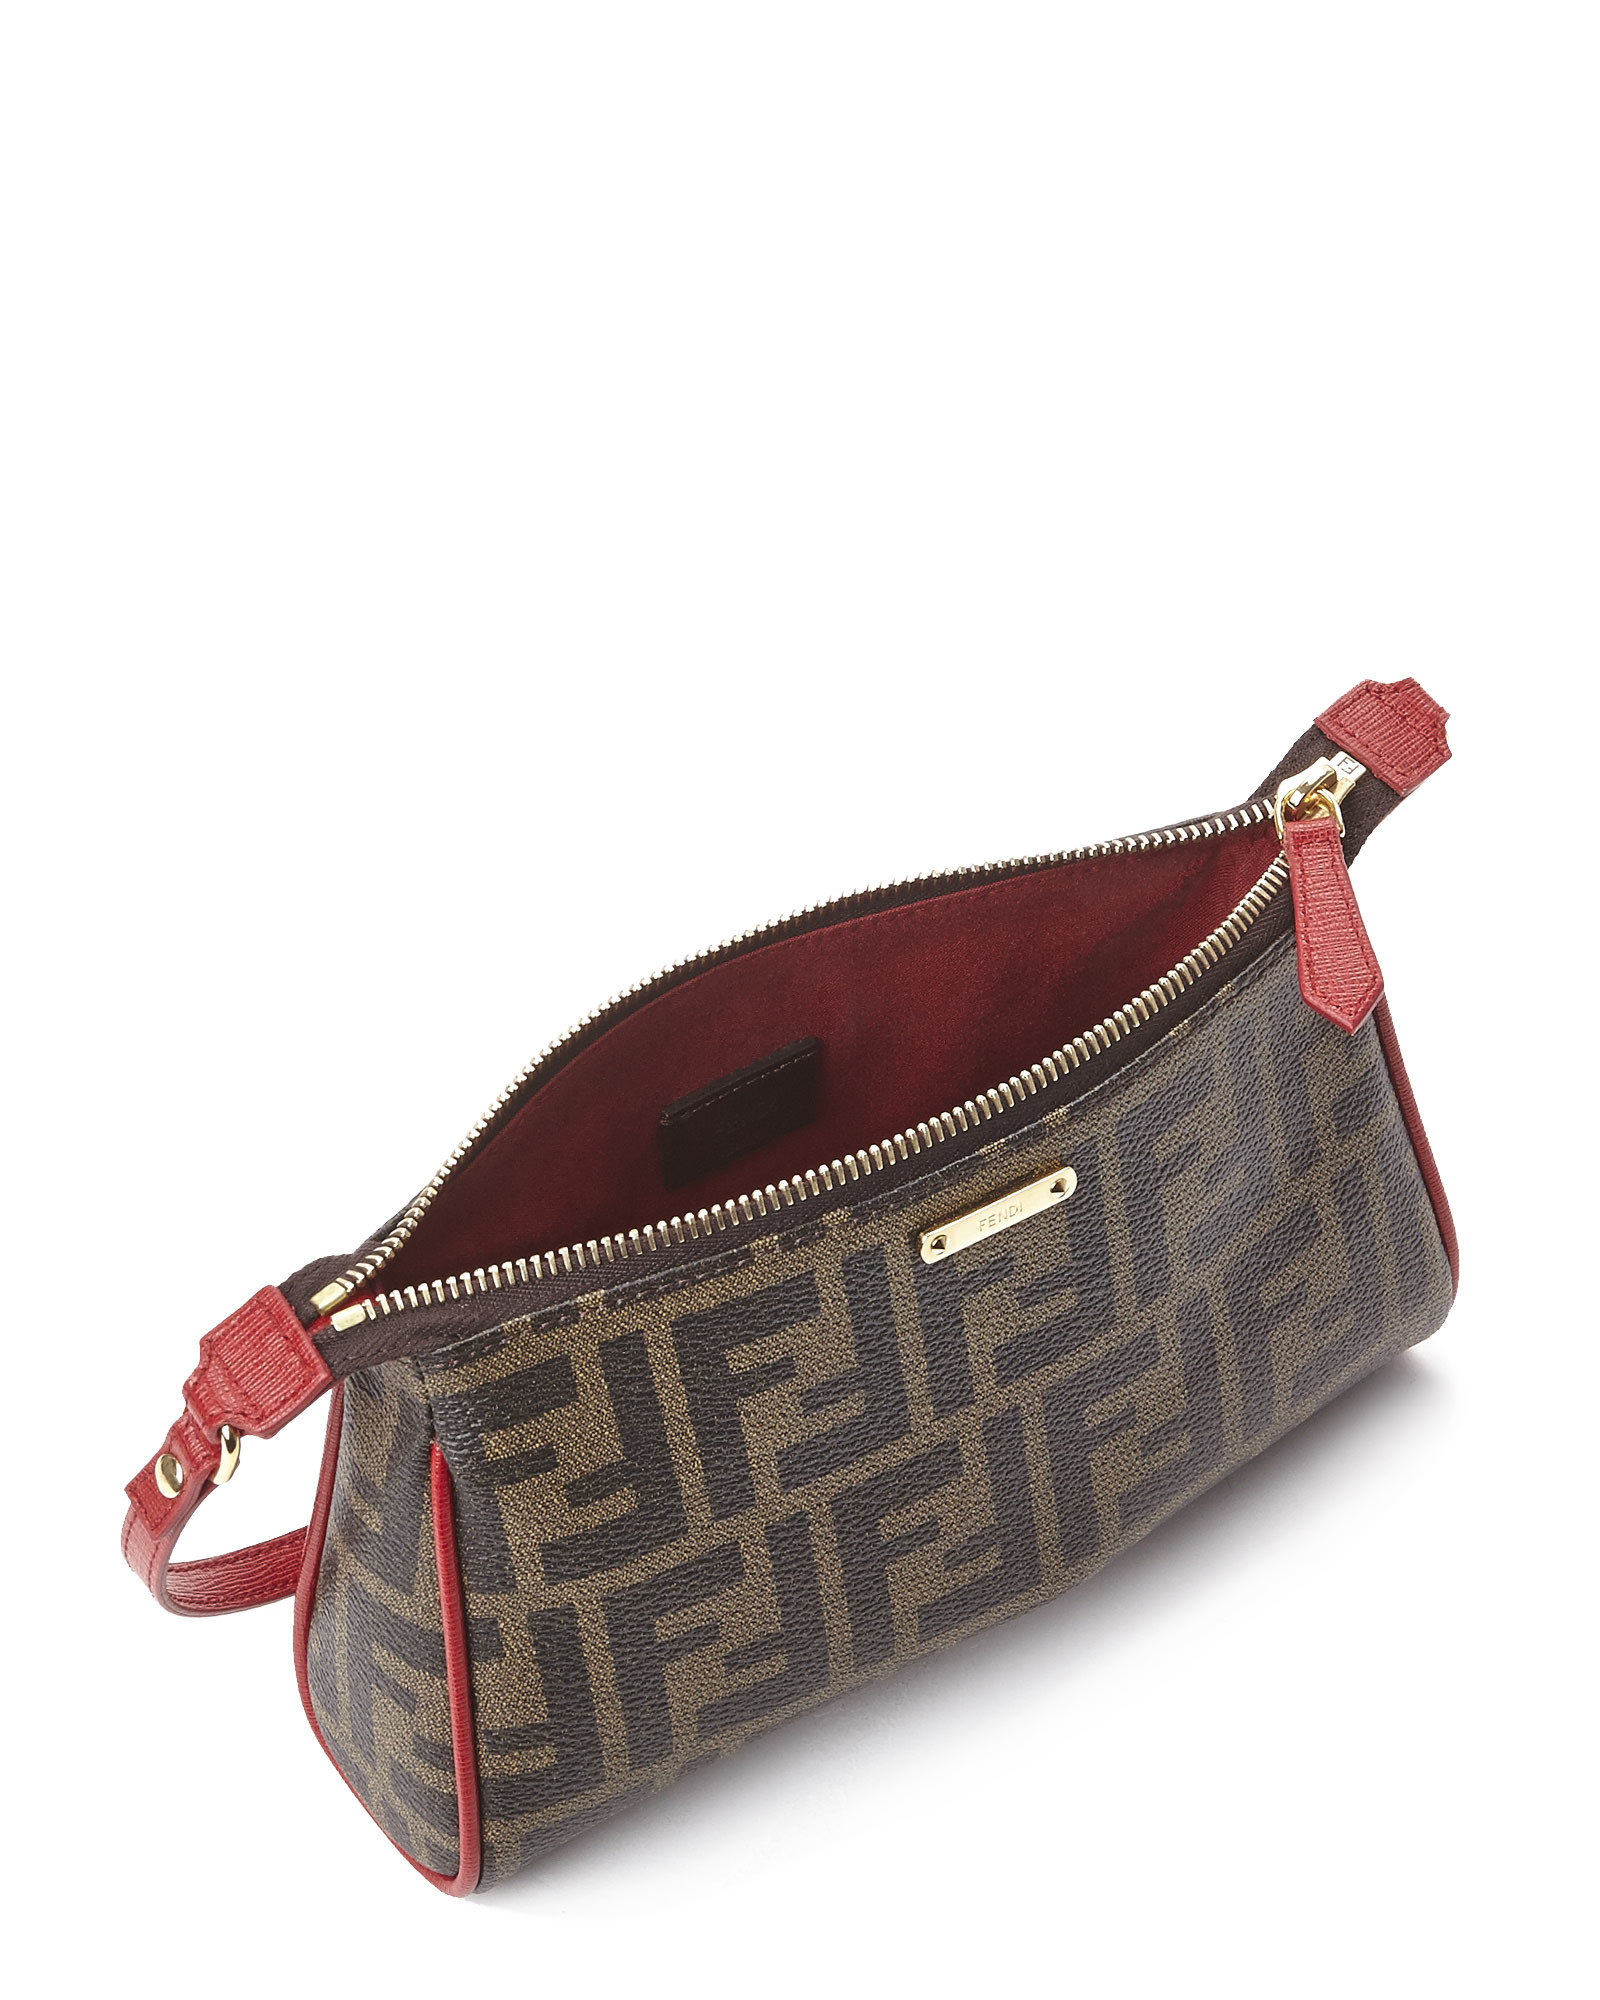 39aa1cf5bb0 Lyst - Fendi Tobacco   Brick Gold Zucca Mini Pouch in Red